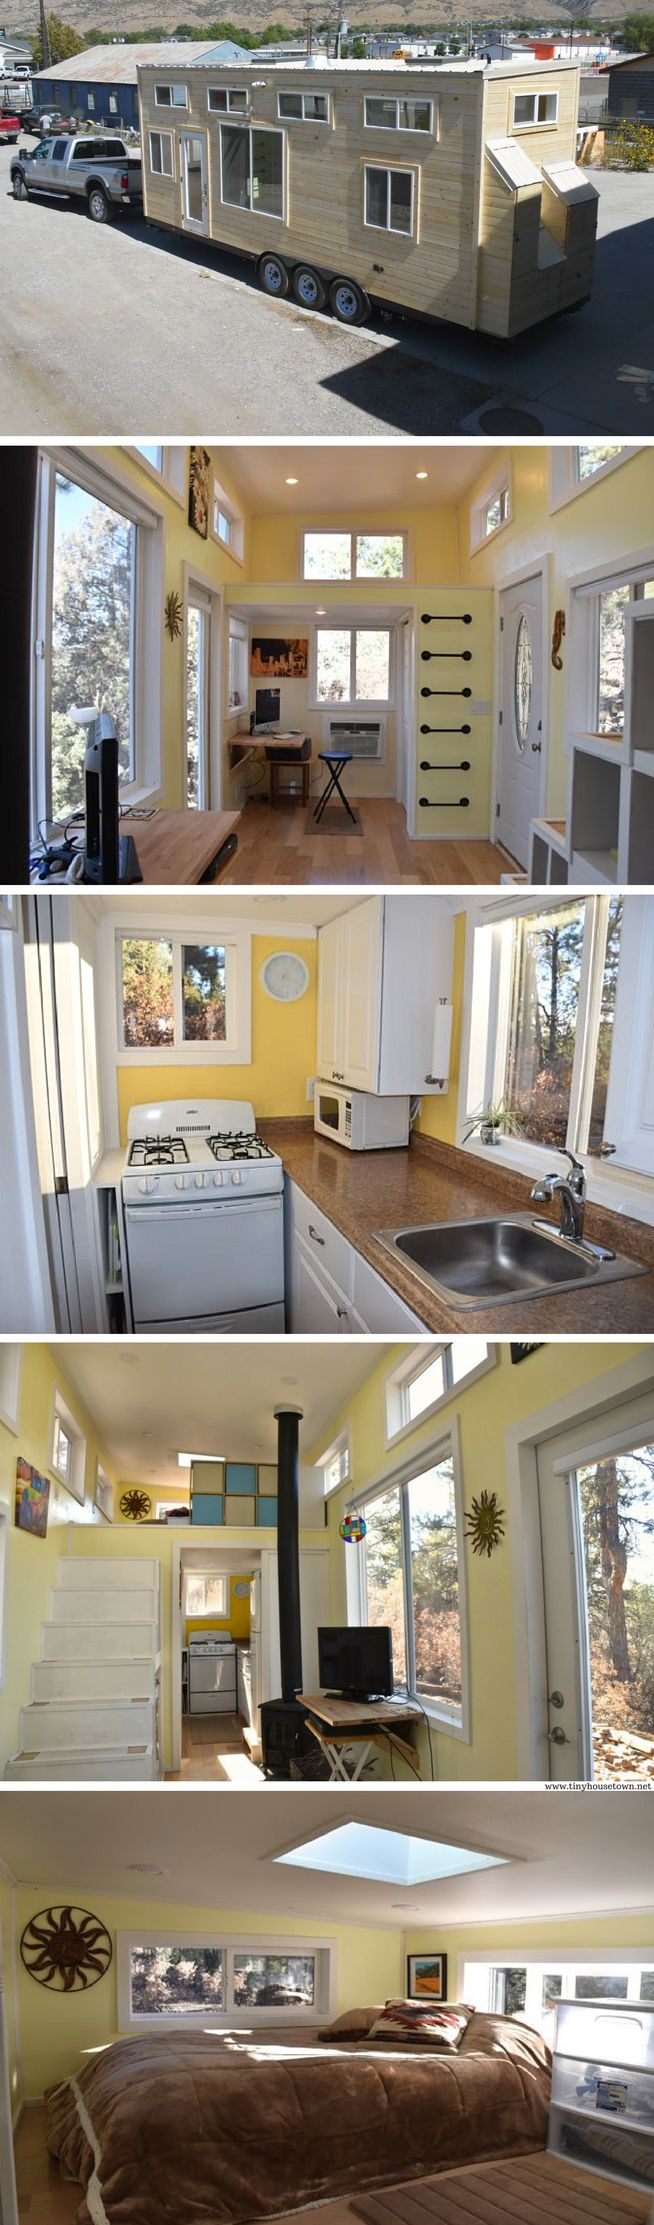 A new 310 sq ft home from Upper Valley Tiny Homes. Currently available for sale in Colorado!